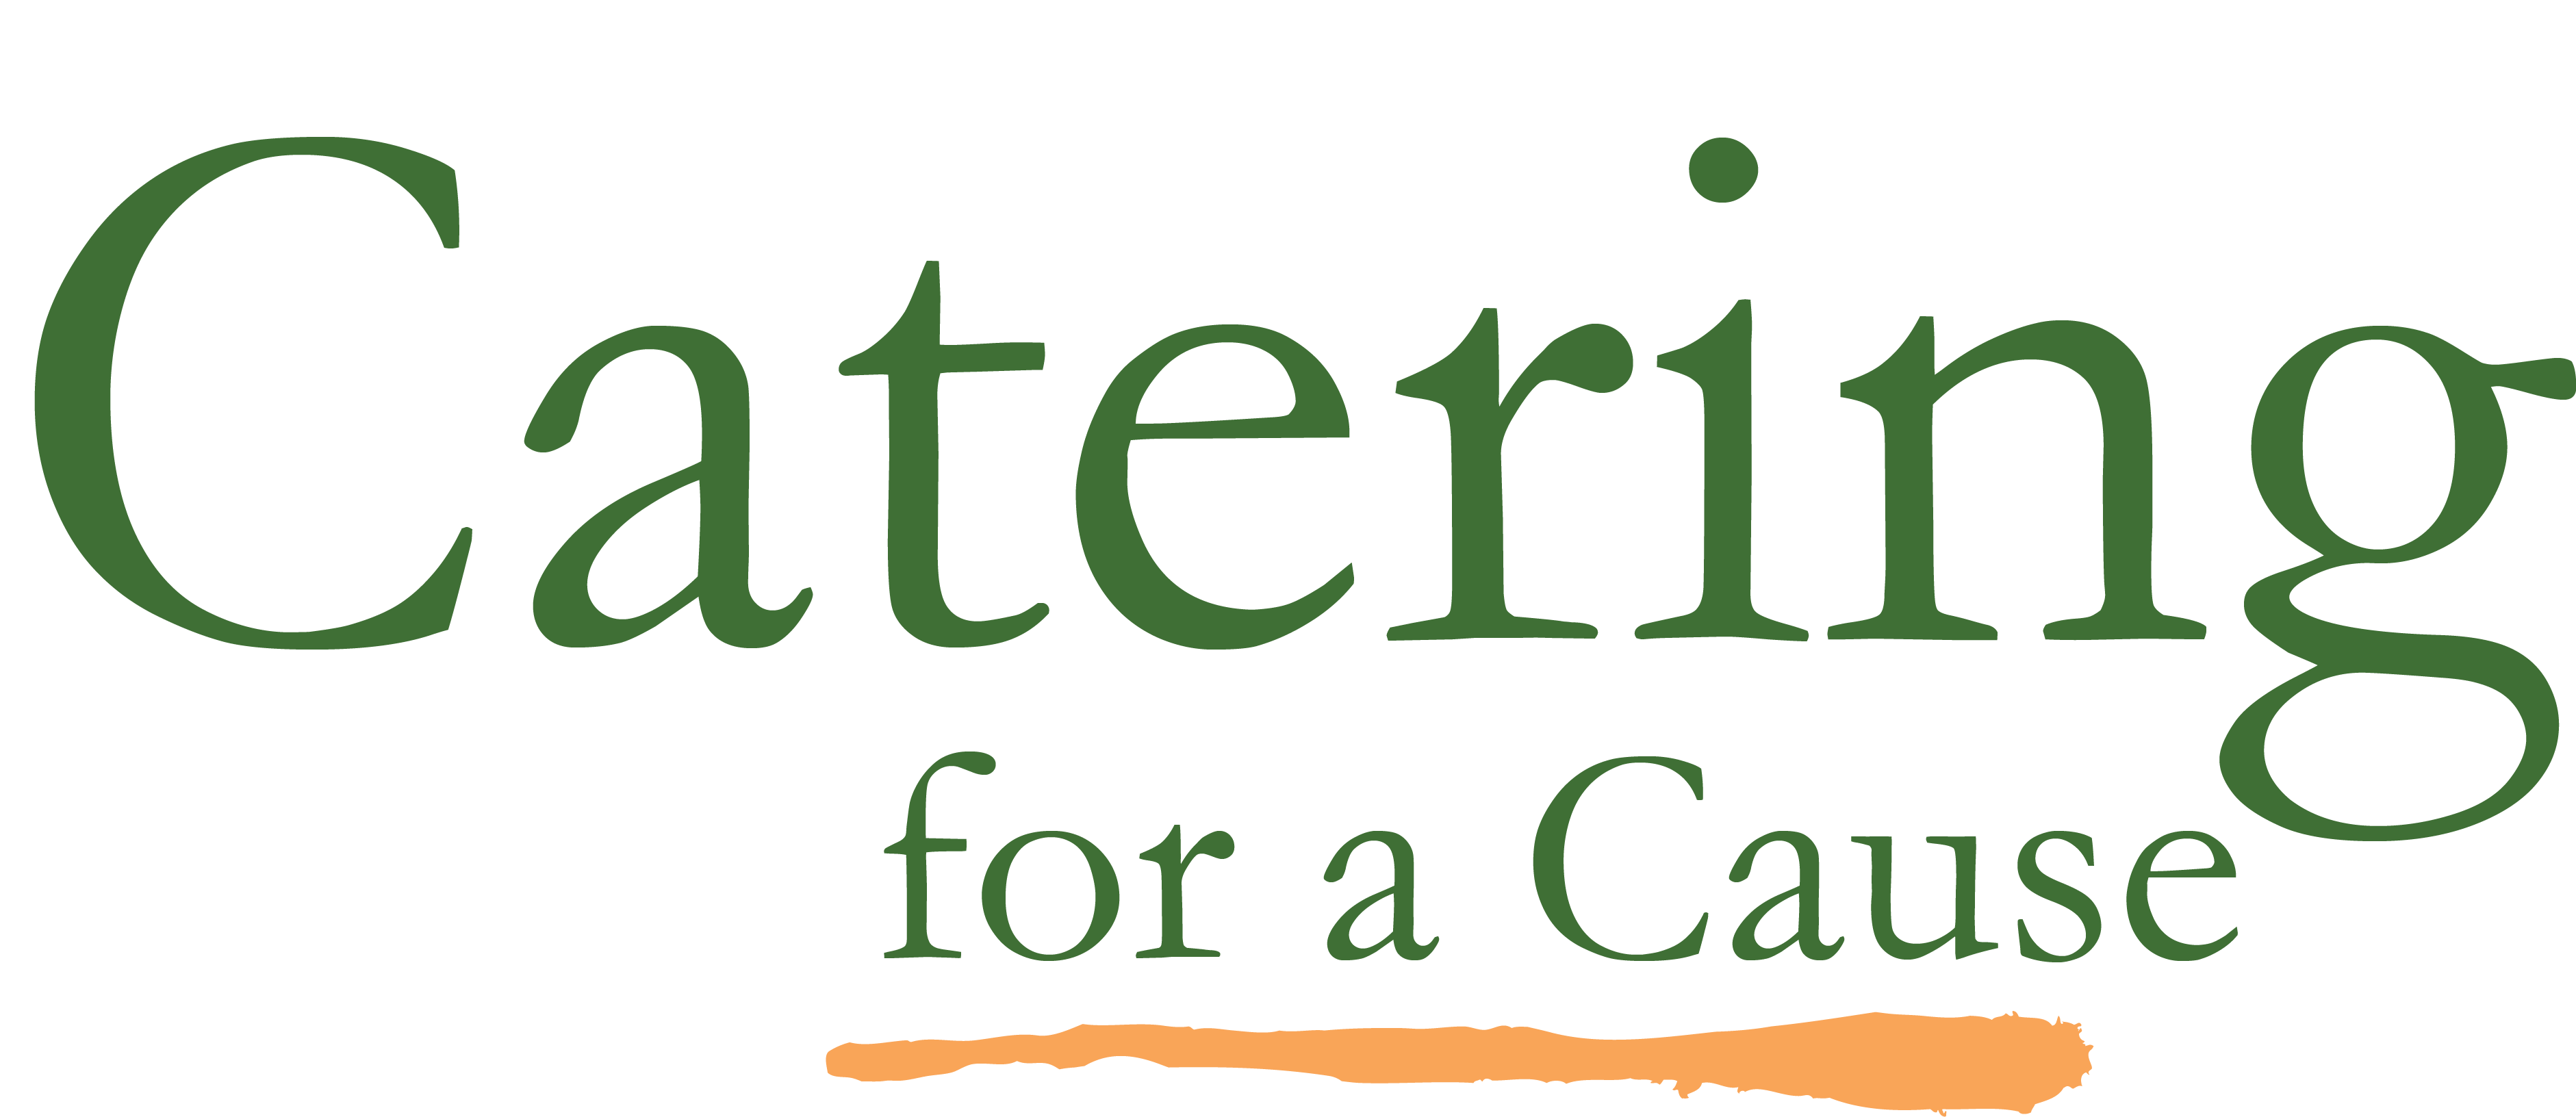 Catering for a Cause logo